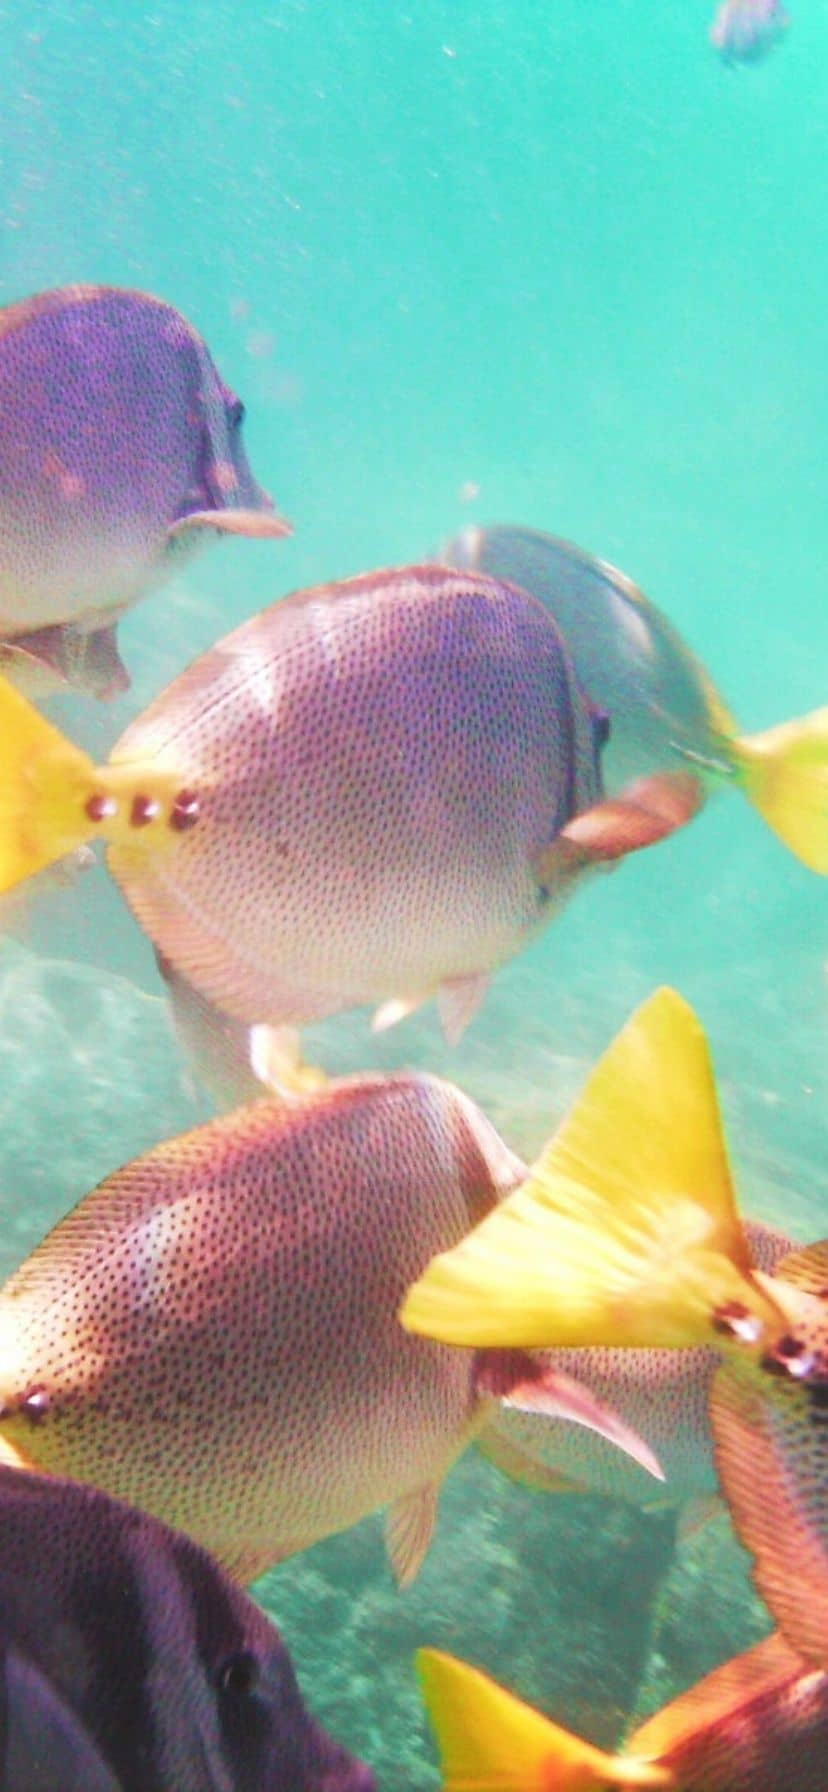 School of Surgeon fish which snorkeling at Bahia Sant Maria, Cabo San Lucas